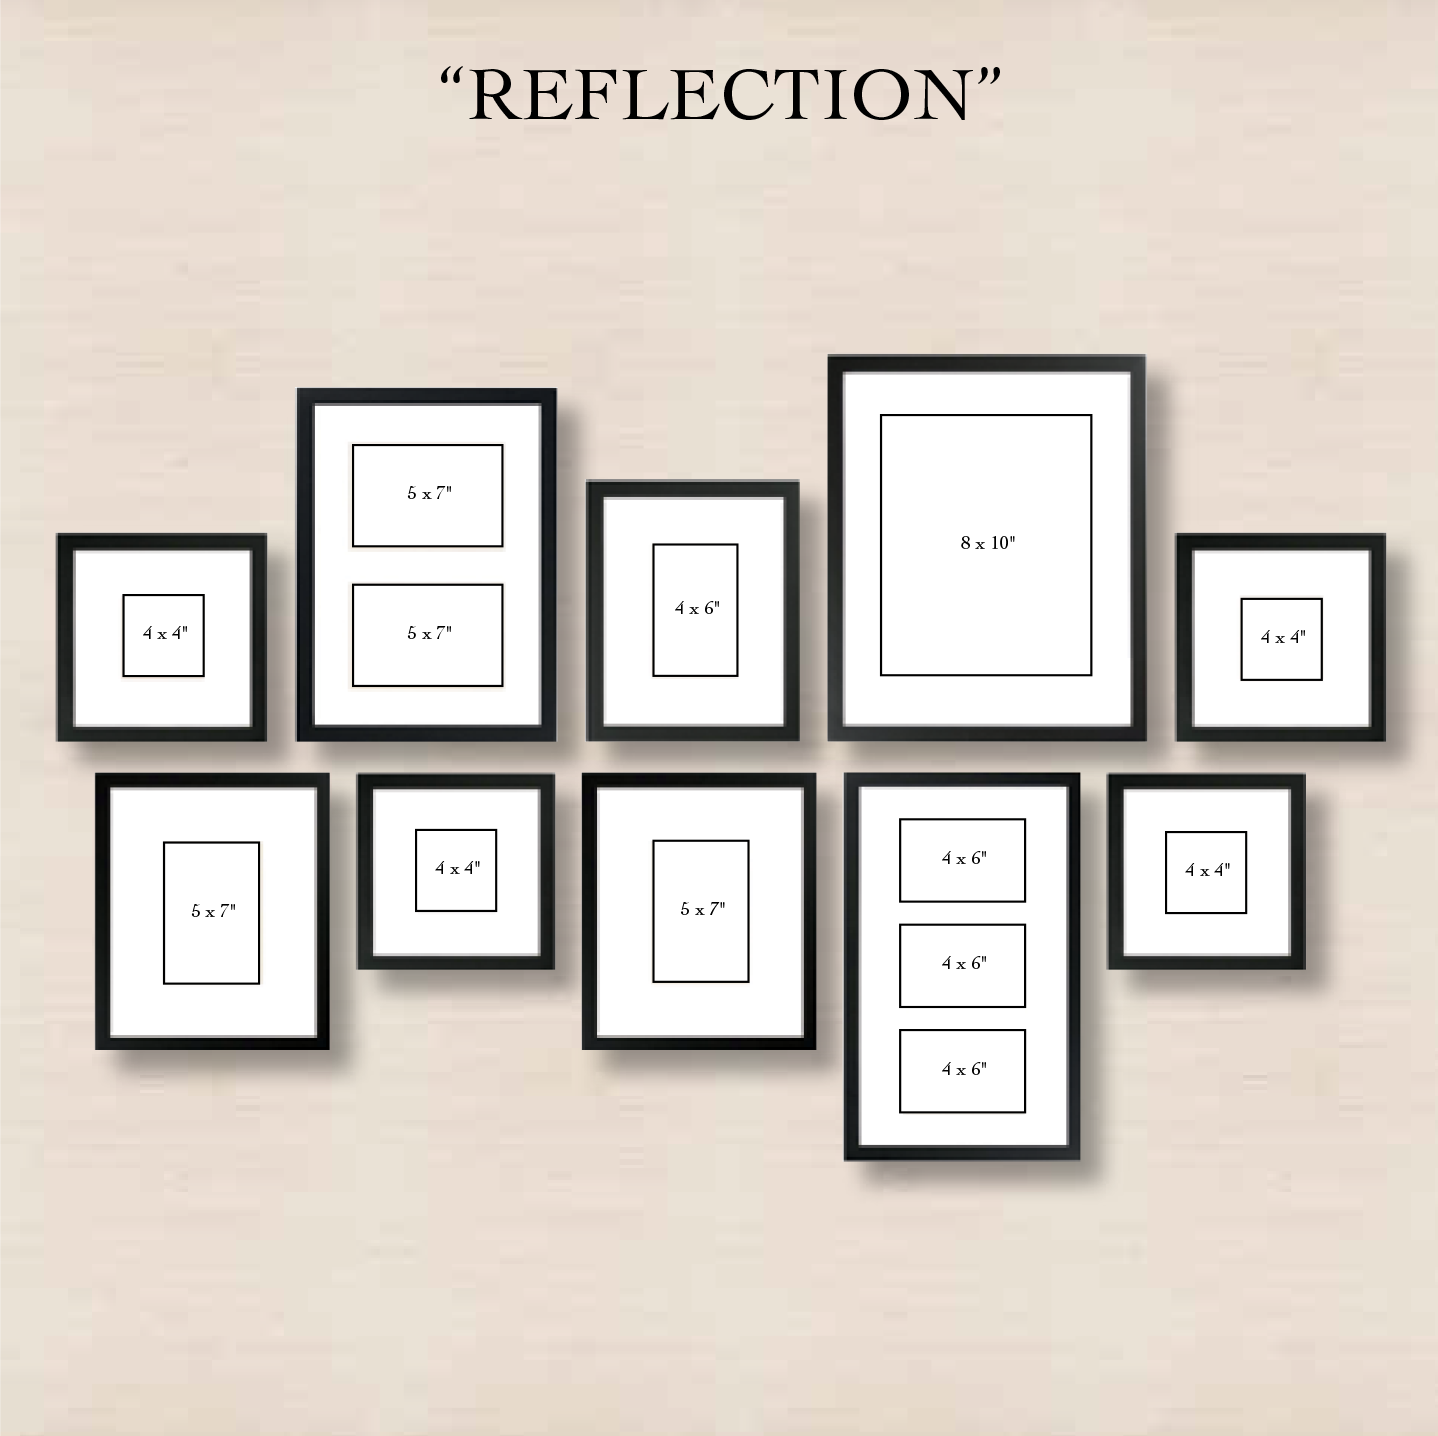 6 ways to set up a gallery wall gallery wall reflection and walls 6 ways to set up a gallery wall 4 reflection create order out of jeuxipadfo Images